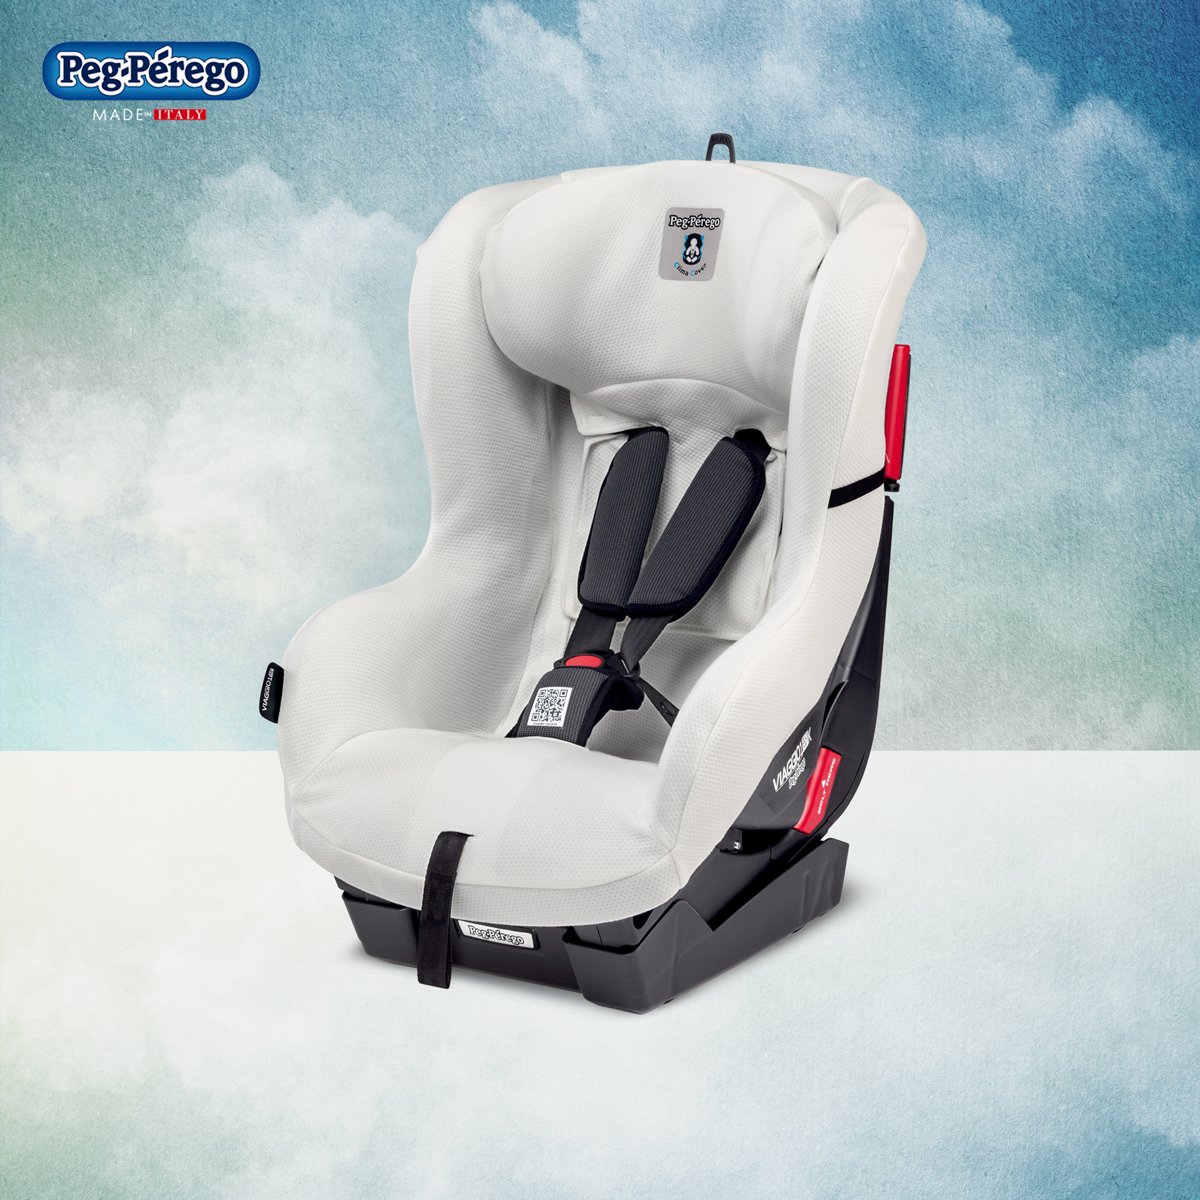 02_clima_cover_car_seat_eng